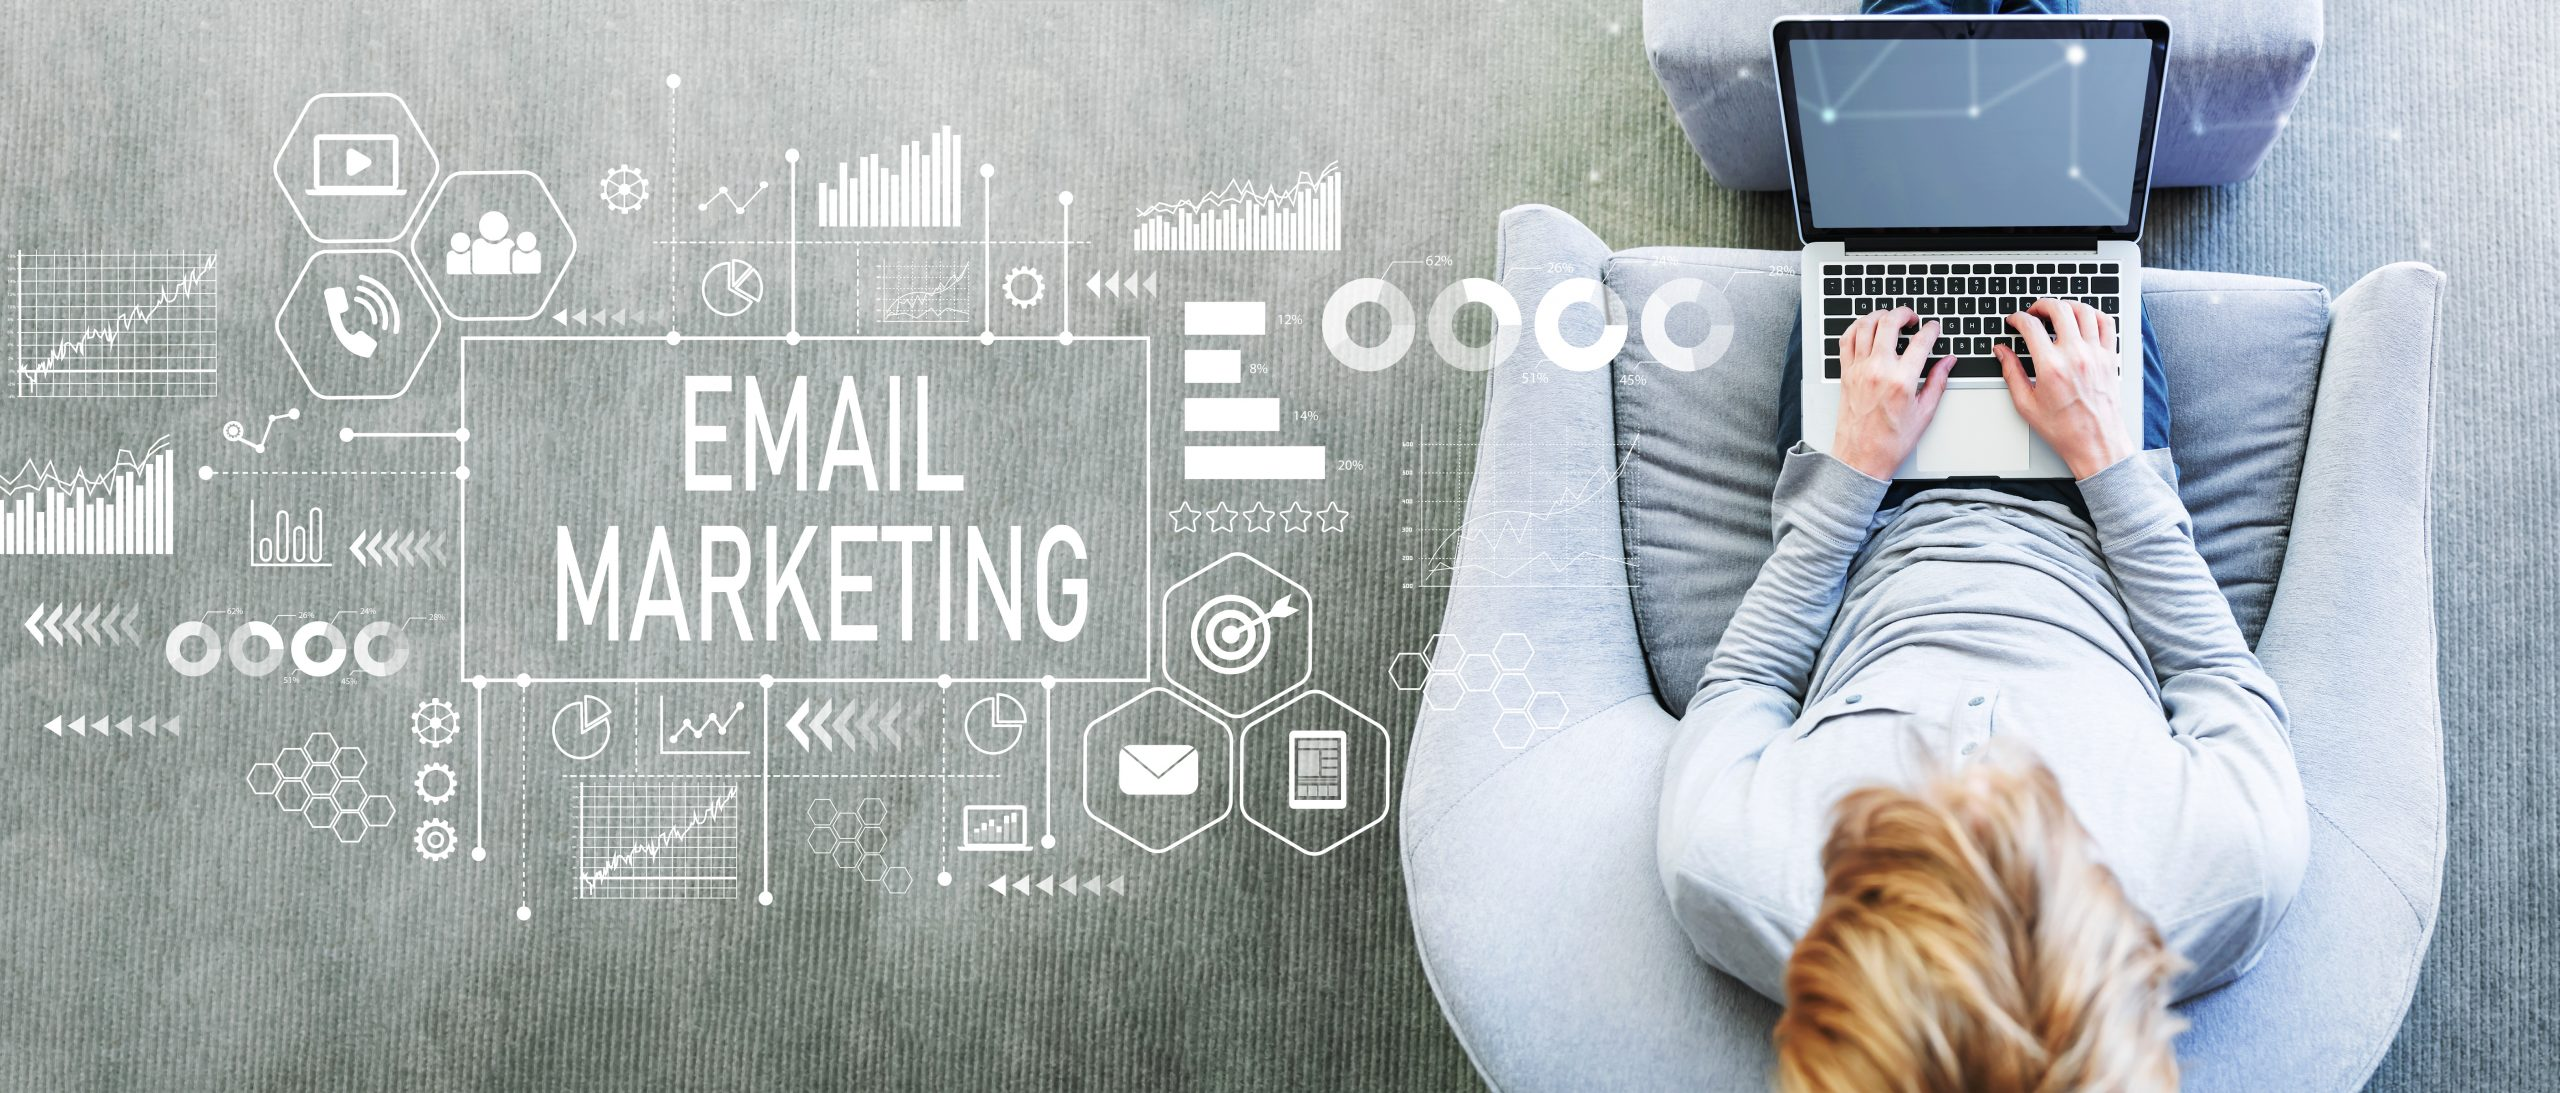 Email Marketing Guide for Begineers